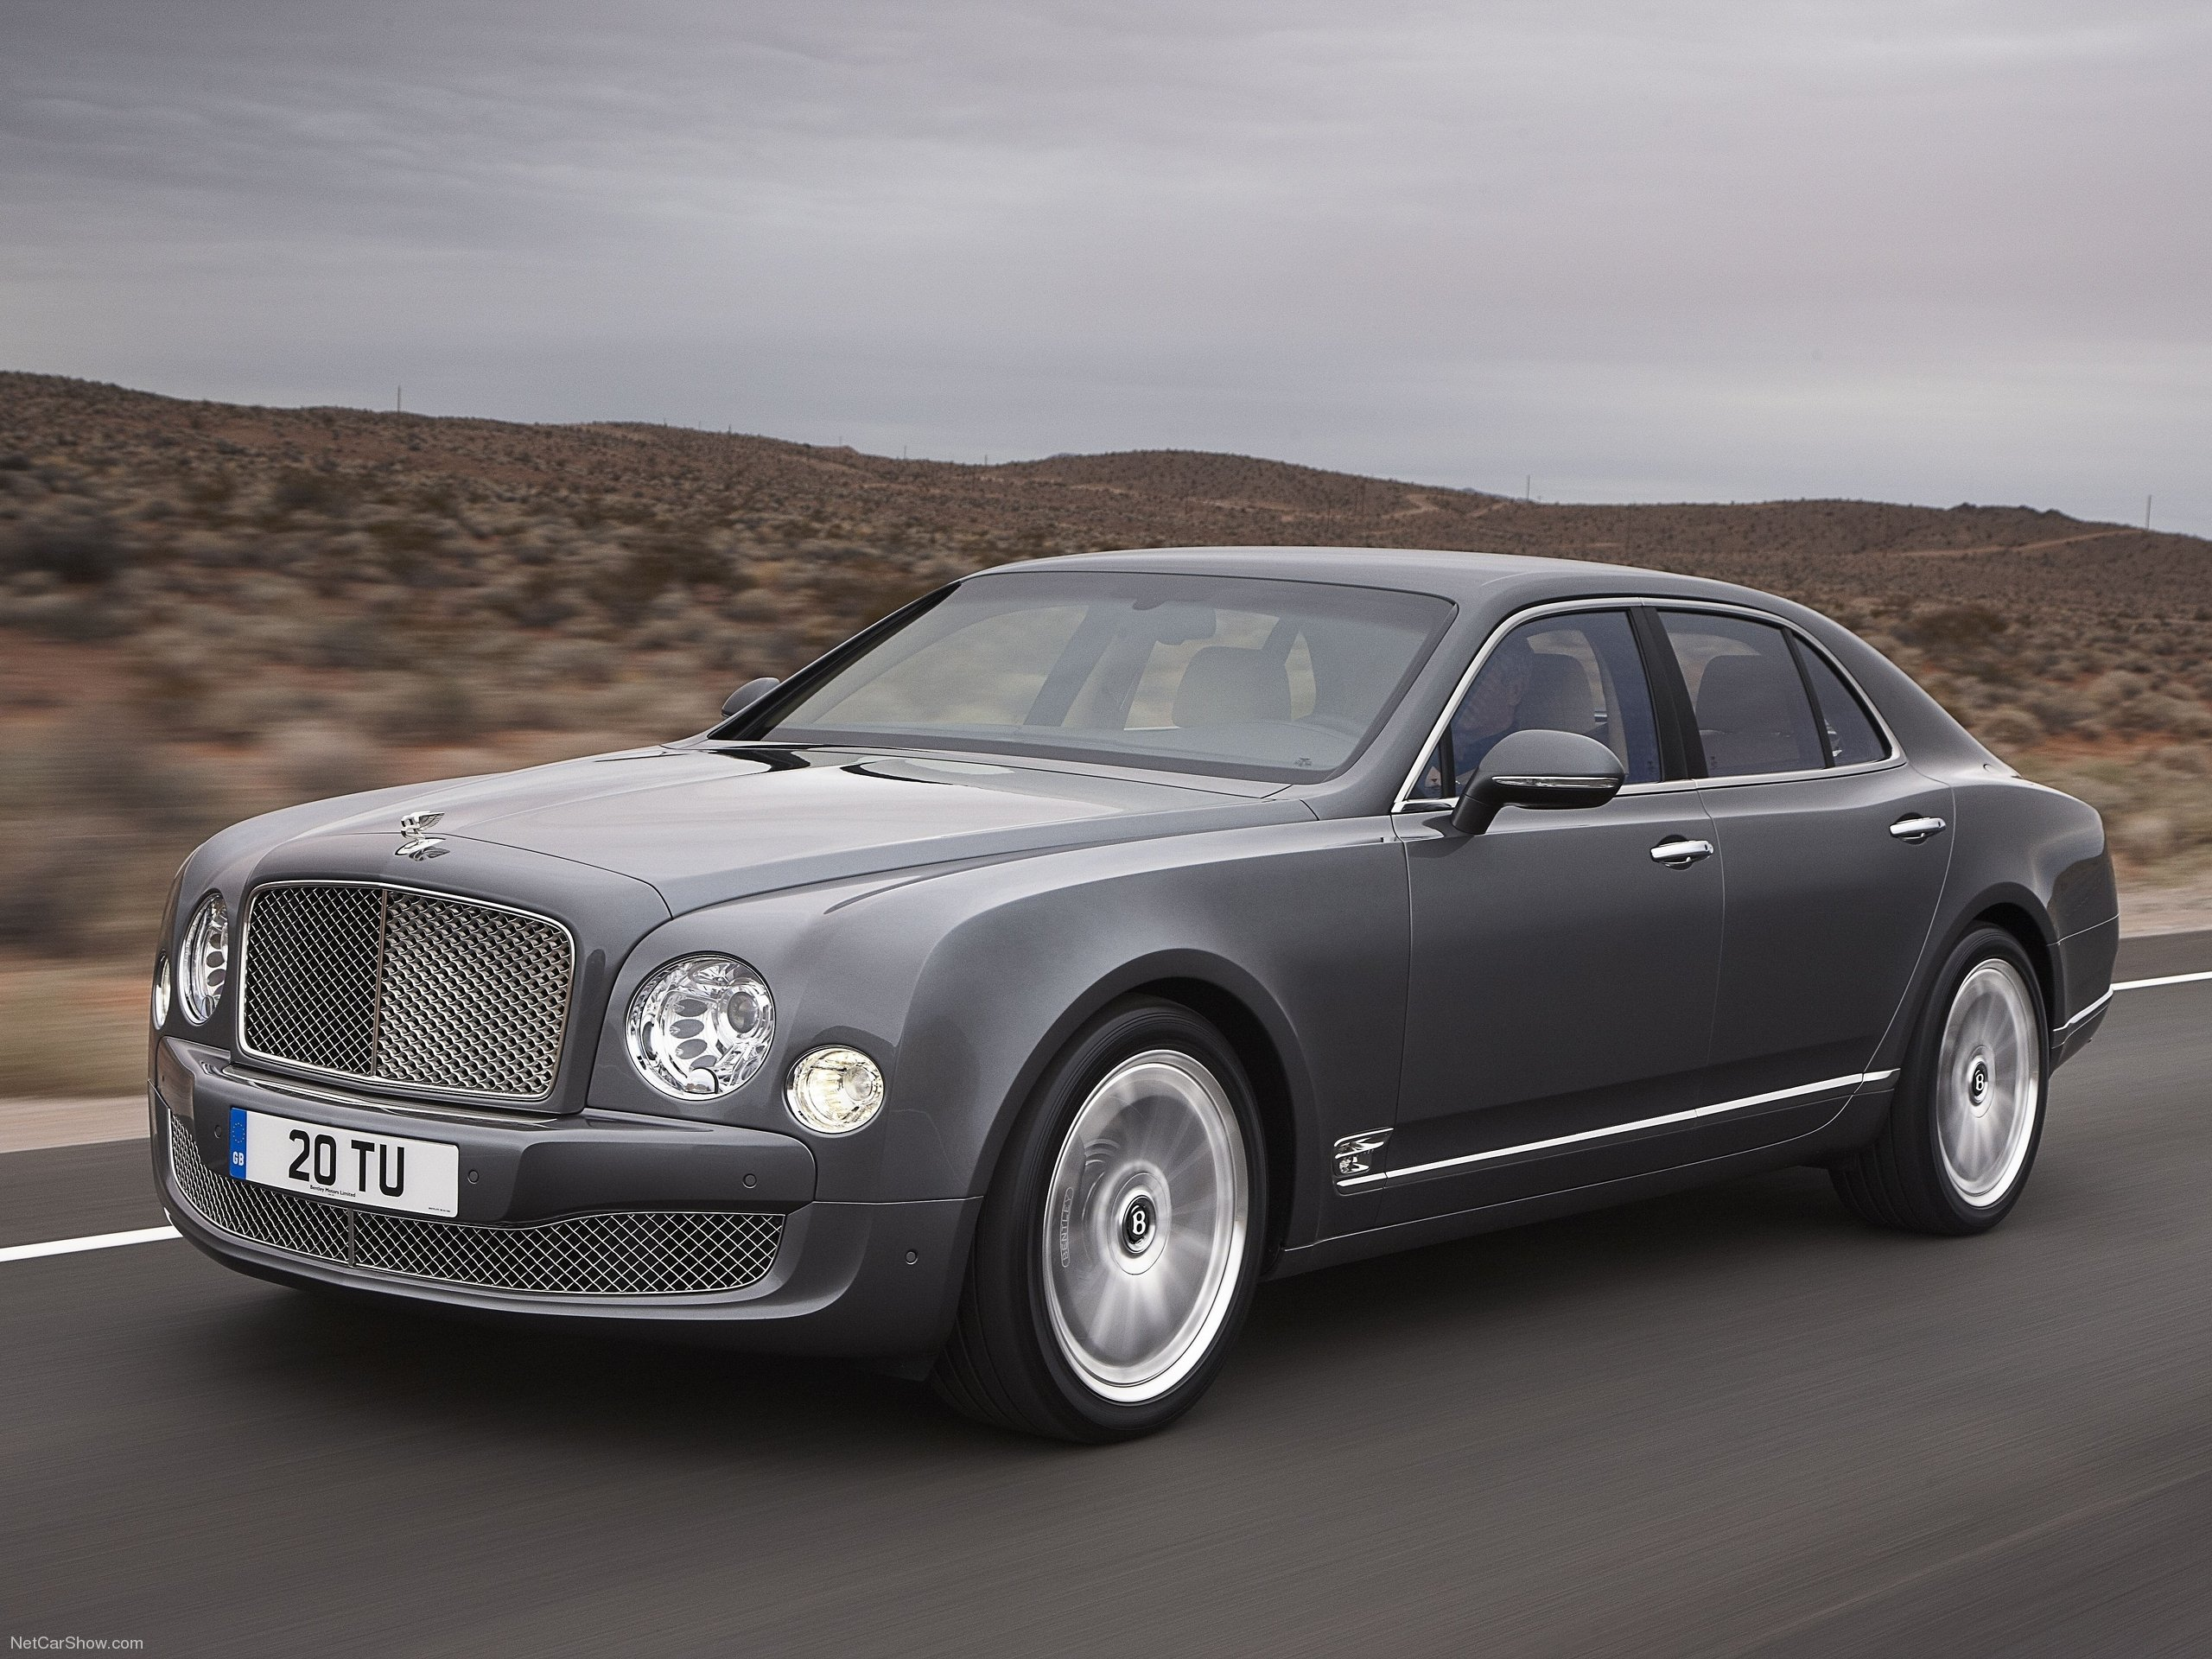 2013 Bentley Mulsane #2